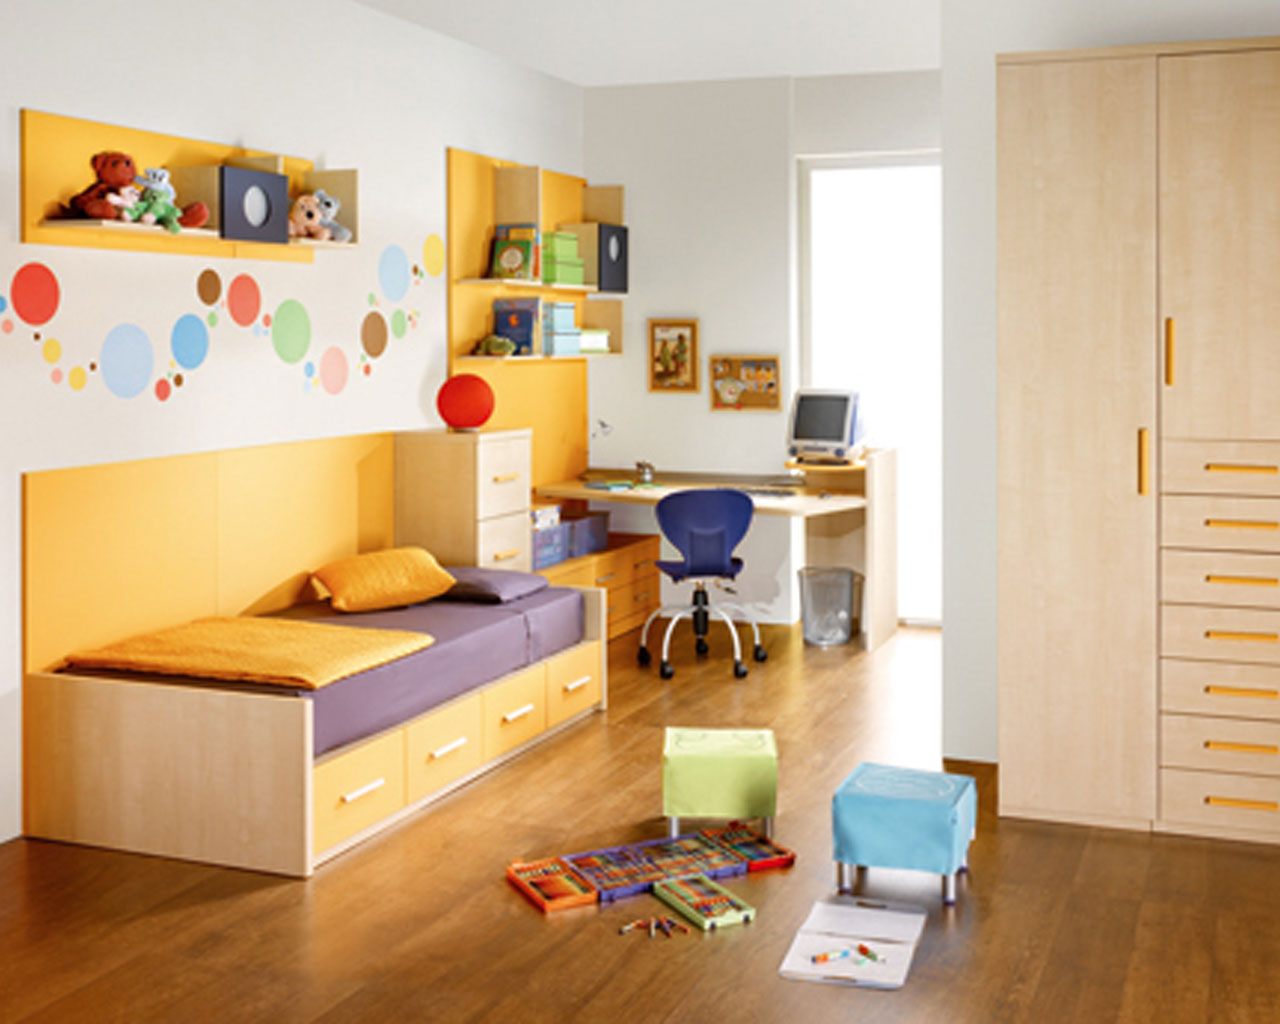 Kids room decor and design ideas as the easy yet effective for Room decor ideas for toddlers